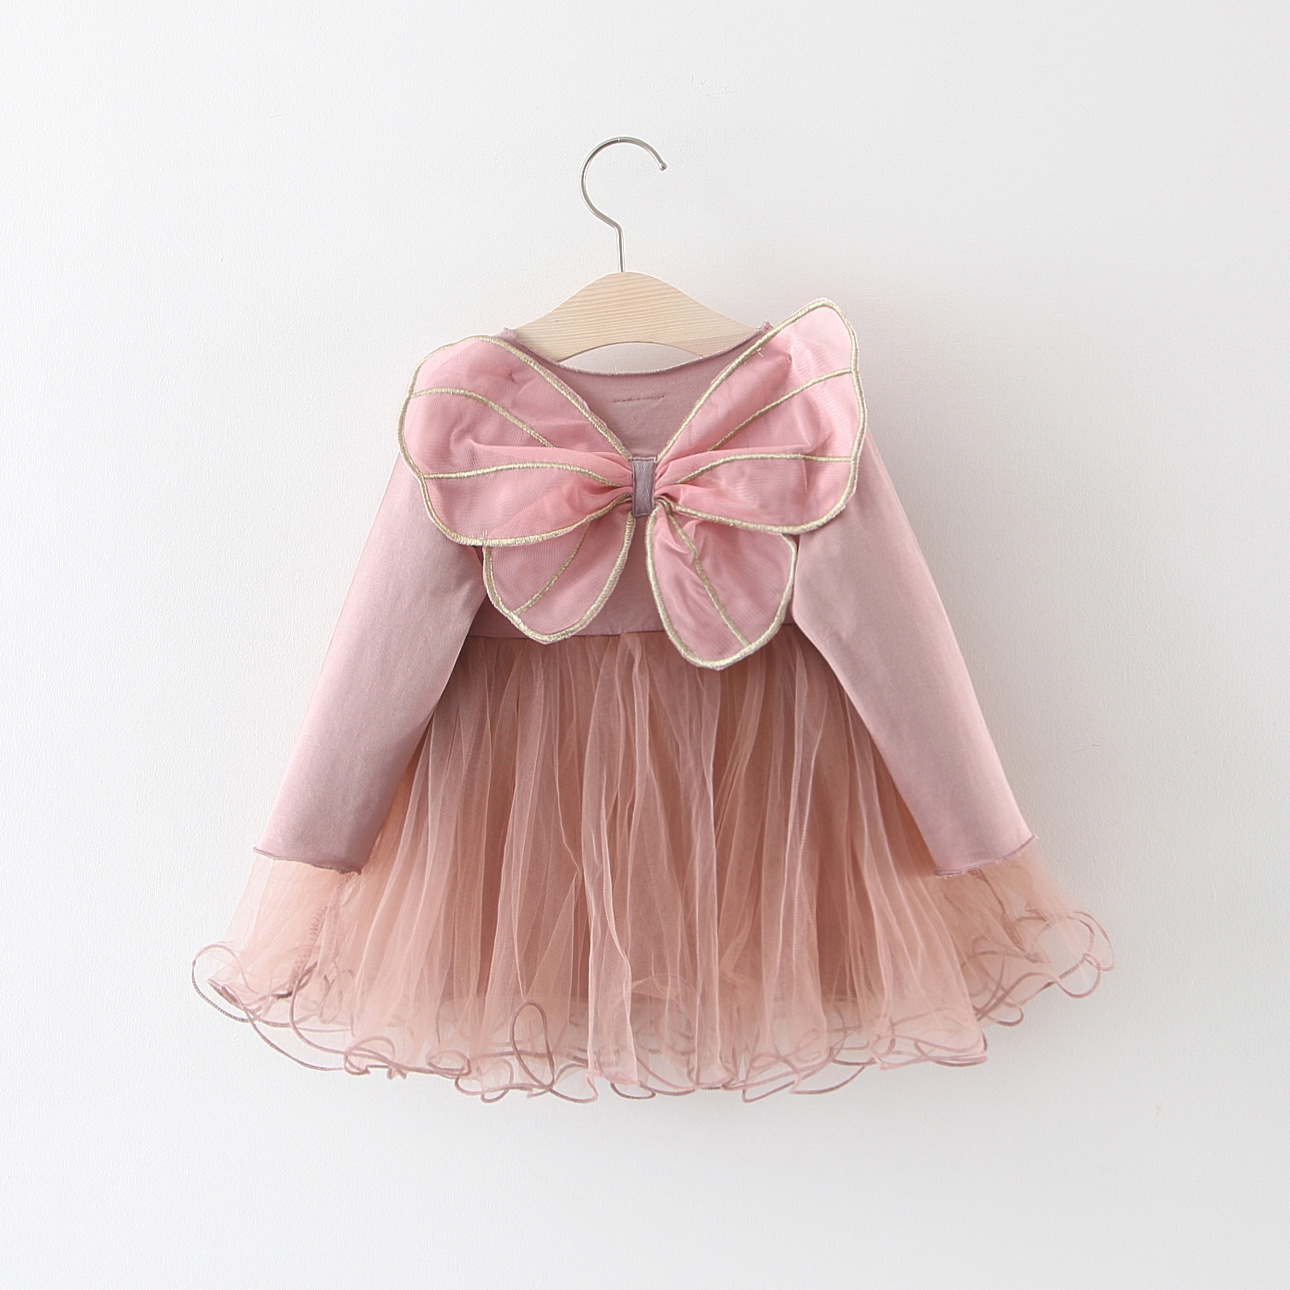 good quality infant baby girls dresses toddler pink color princess dress newborn back bow decoration mesh dress 0-2Y